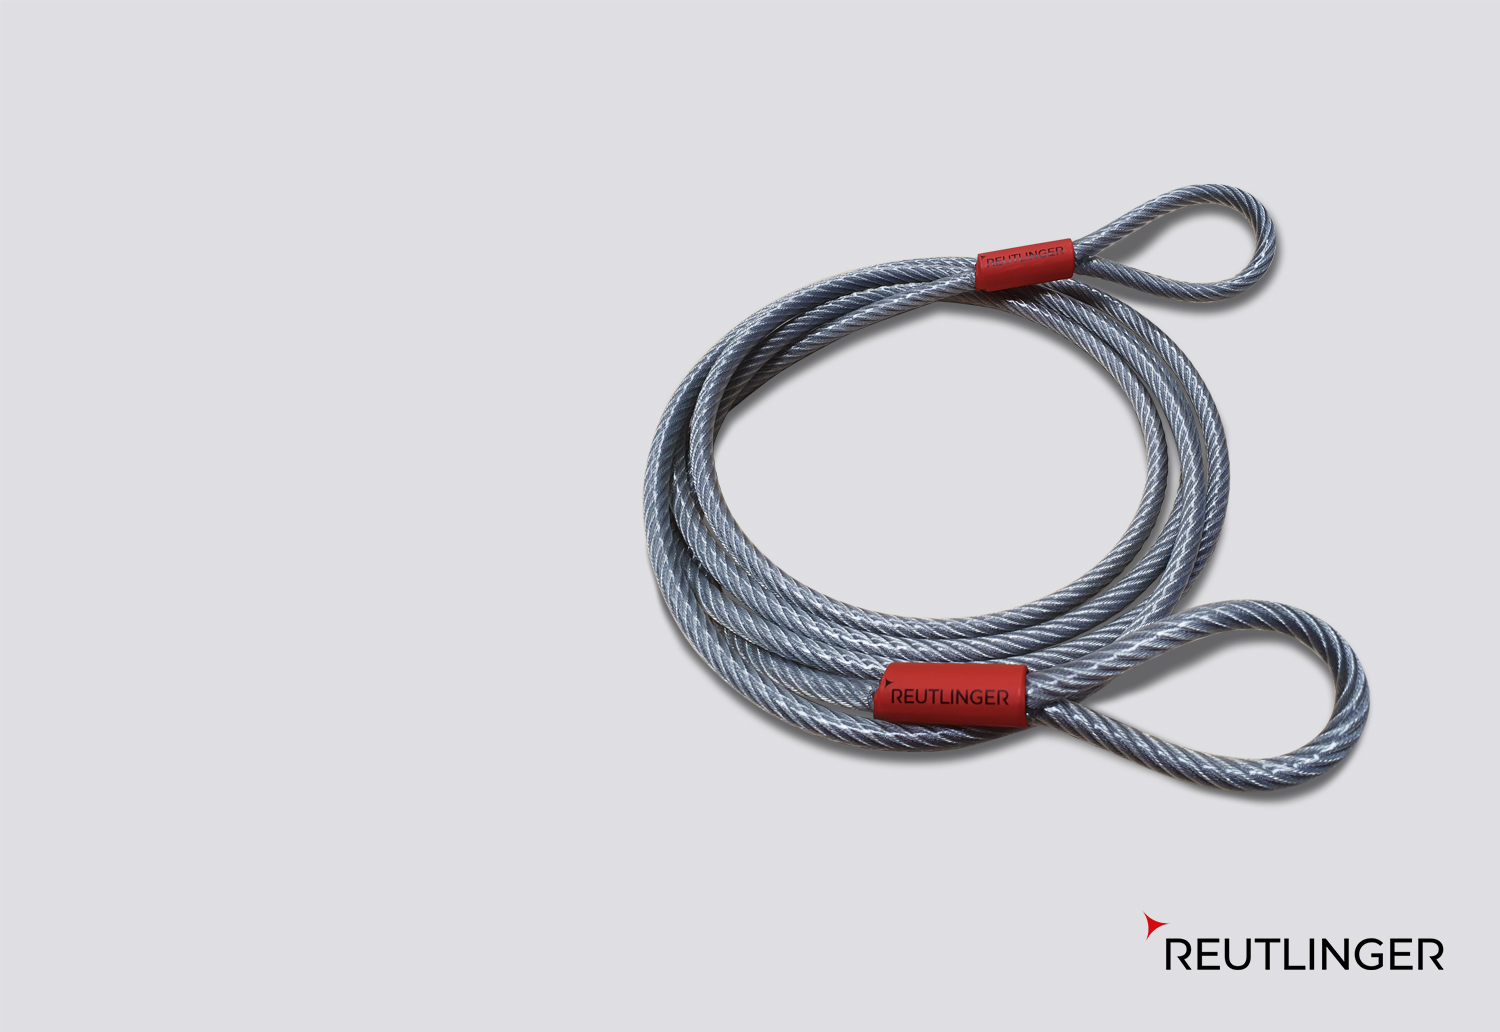 Safety ropes from Reutlinger